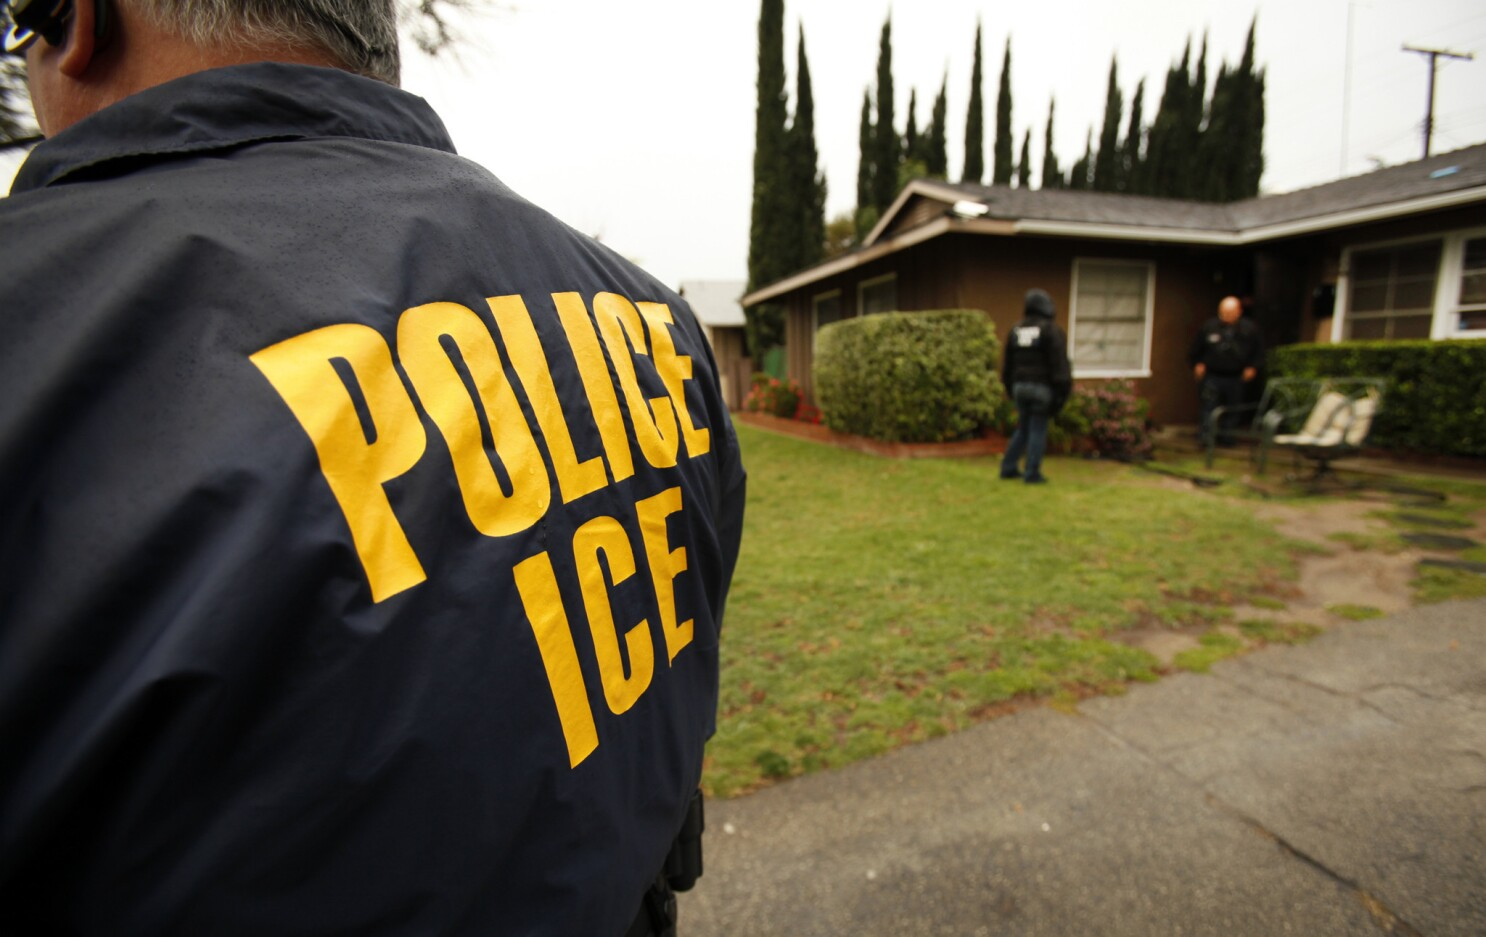 Editorial: Police have plenty to do without Trump coercing them into immigration enforcement